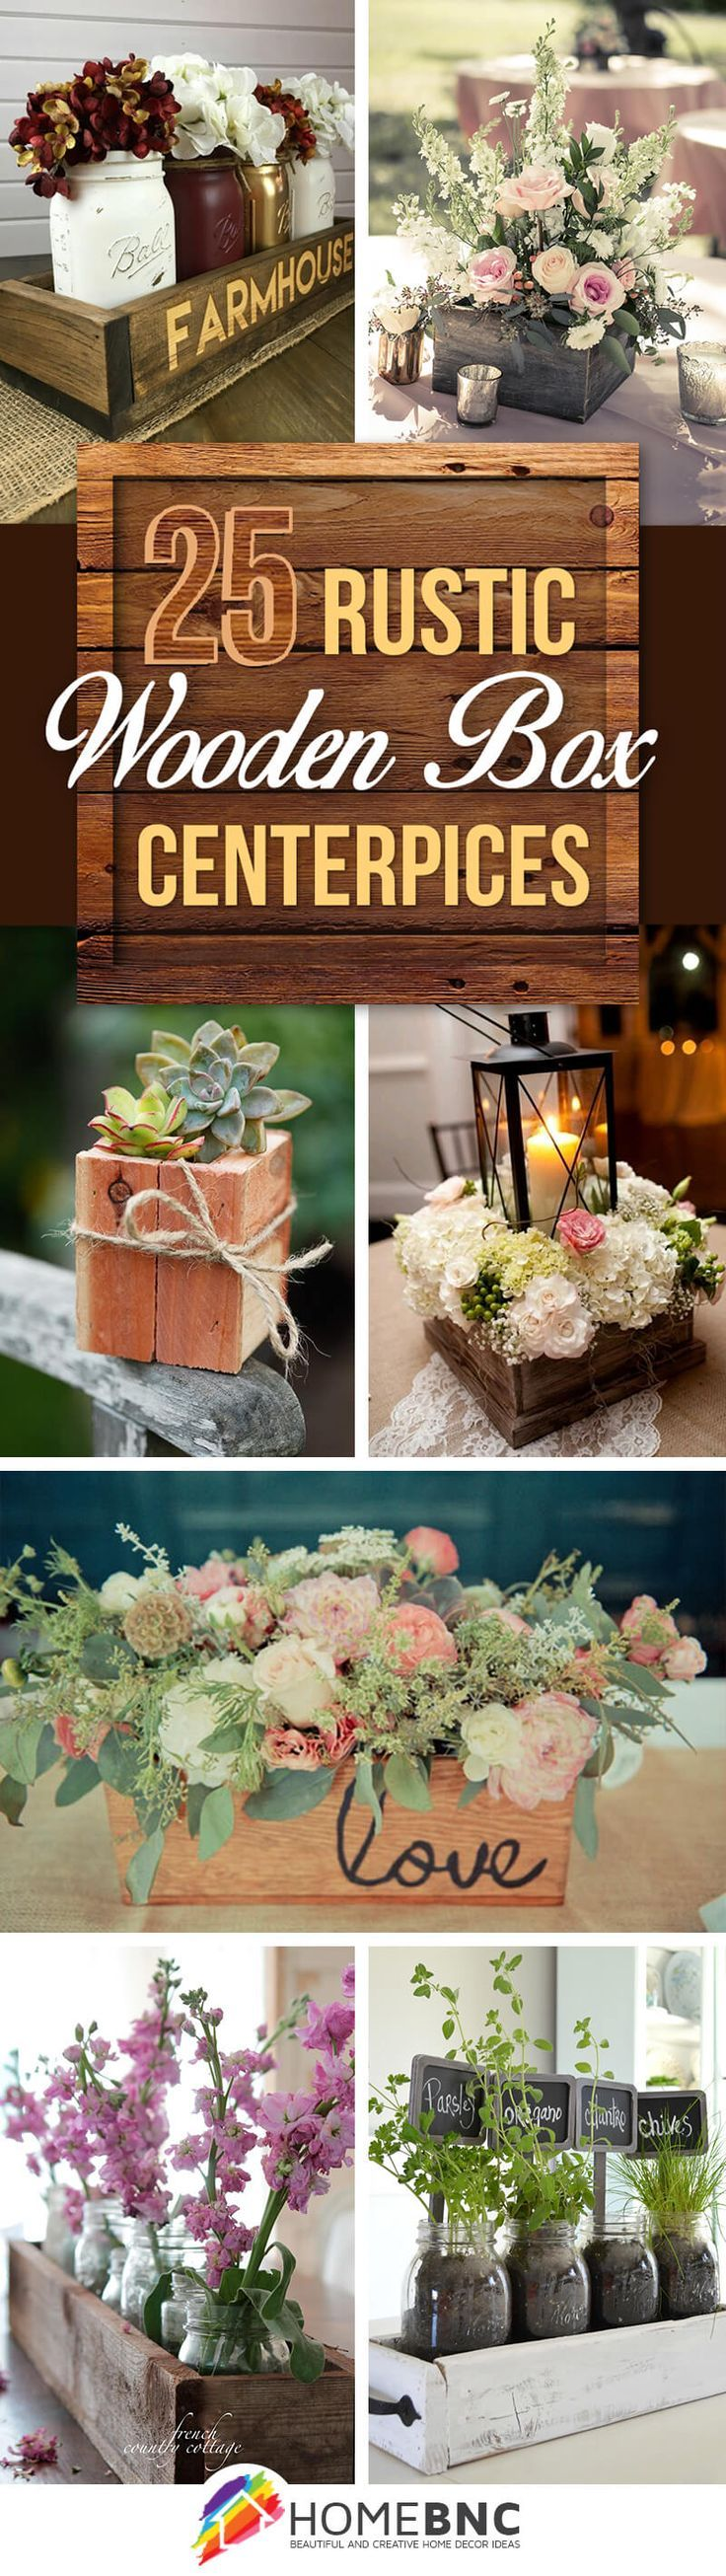 25 Simple And Cute Rustic Wooden Box Centerpiece Ideas To